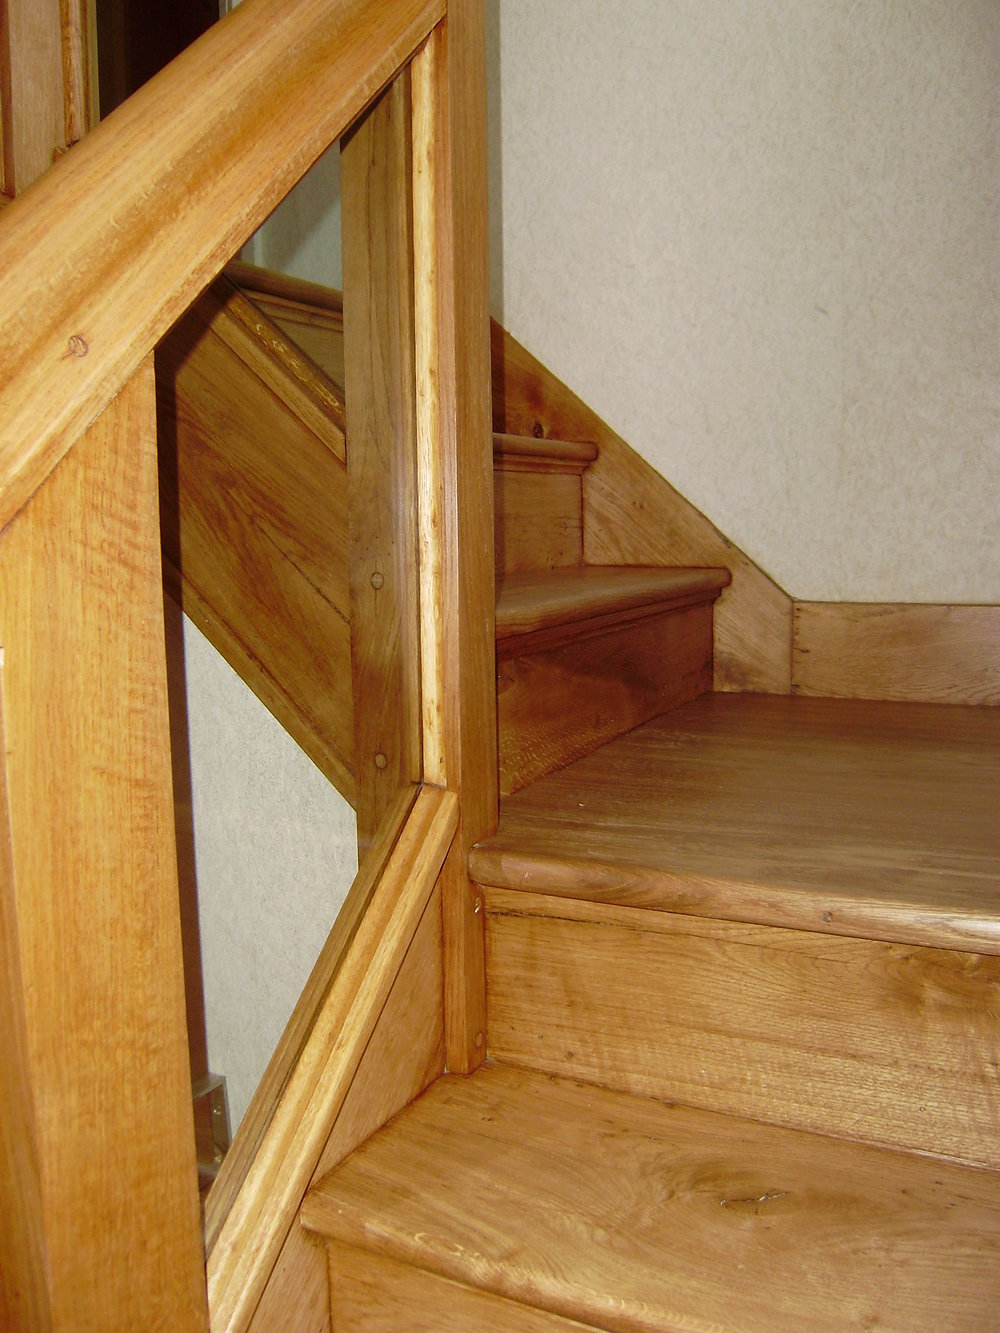 Transformation - The whole staircase was sanded back and re finished, with toughened glass replacing the plywood.